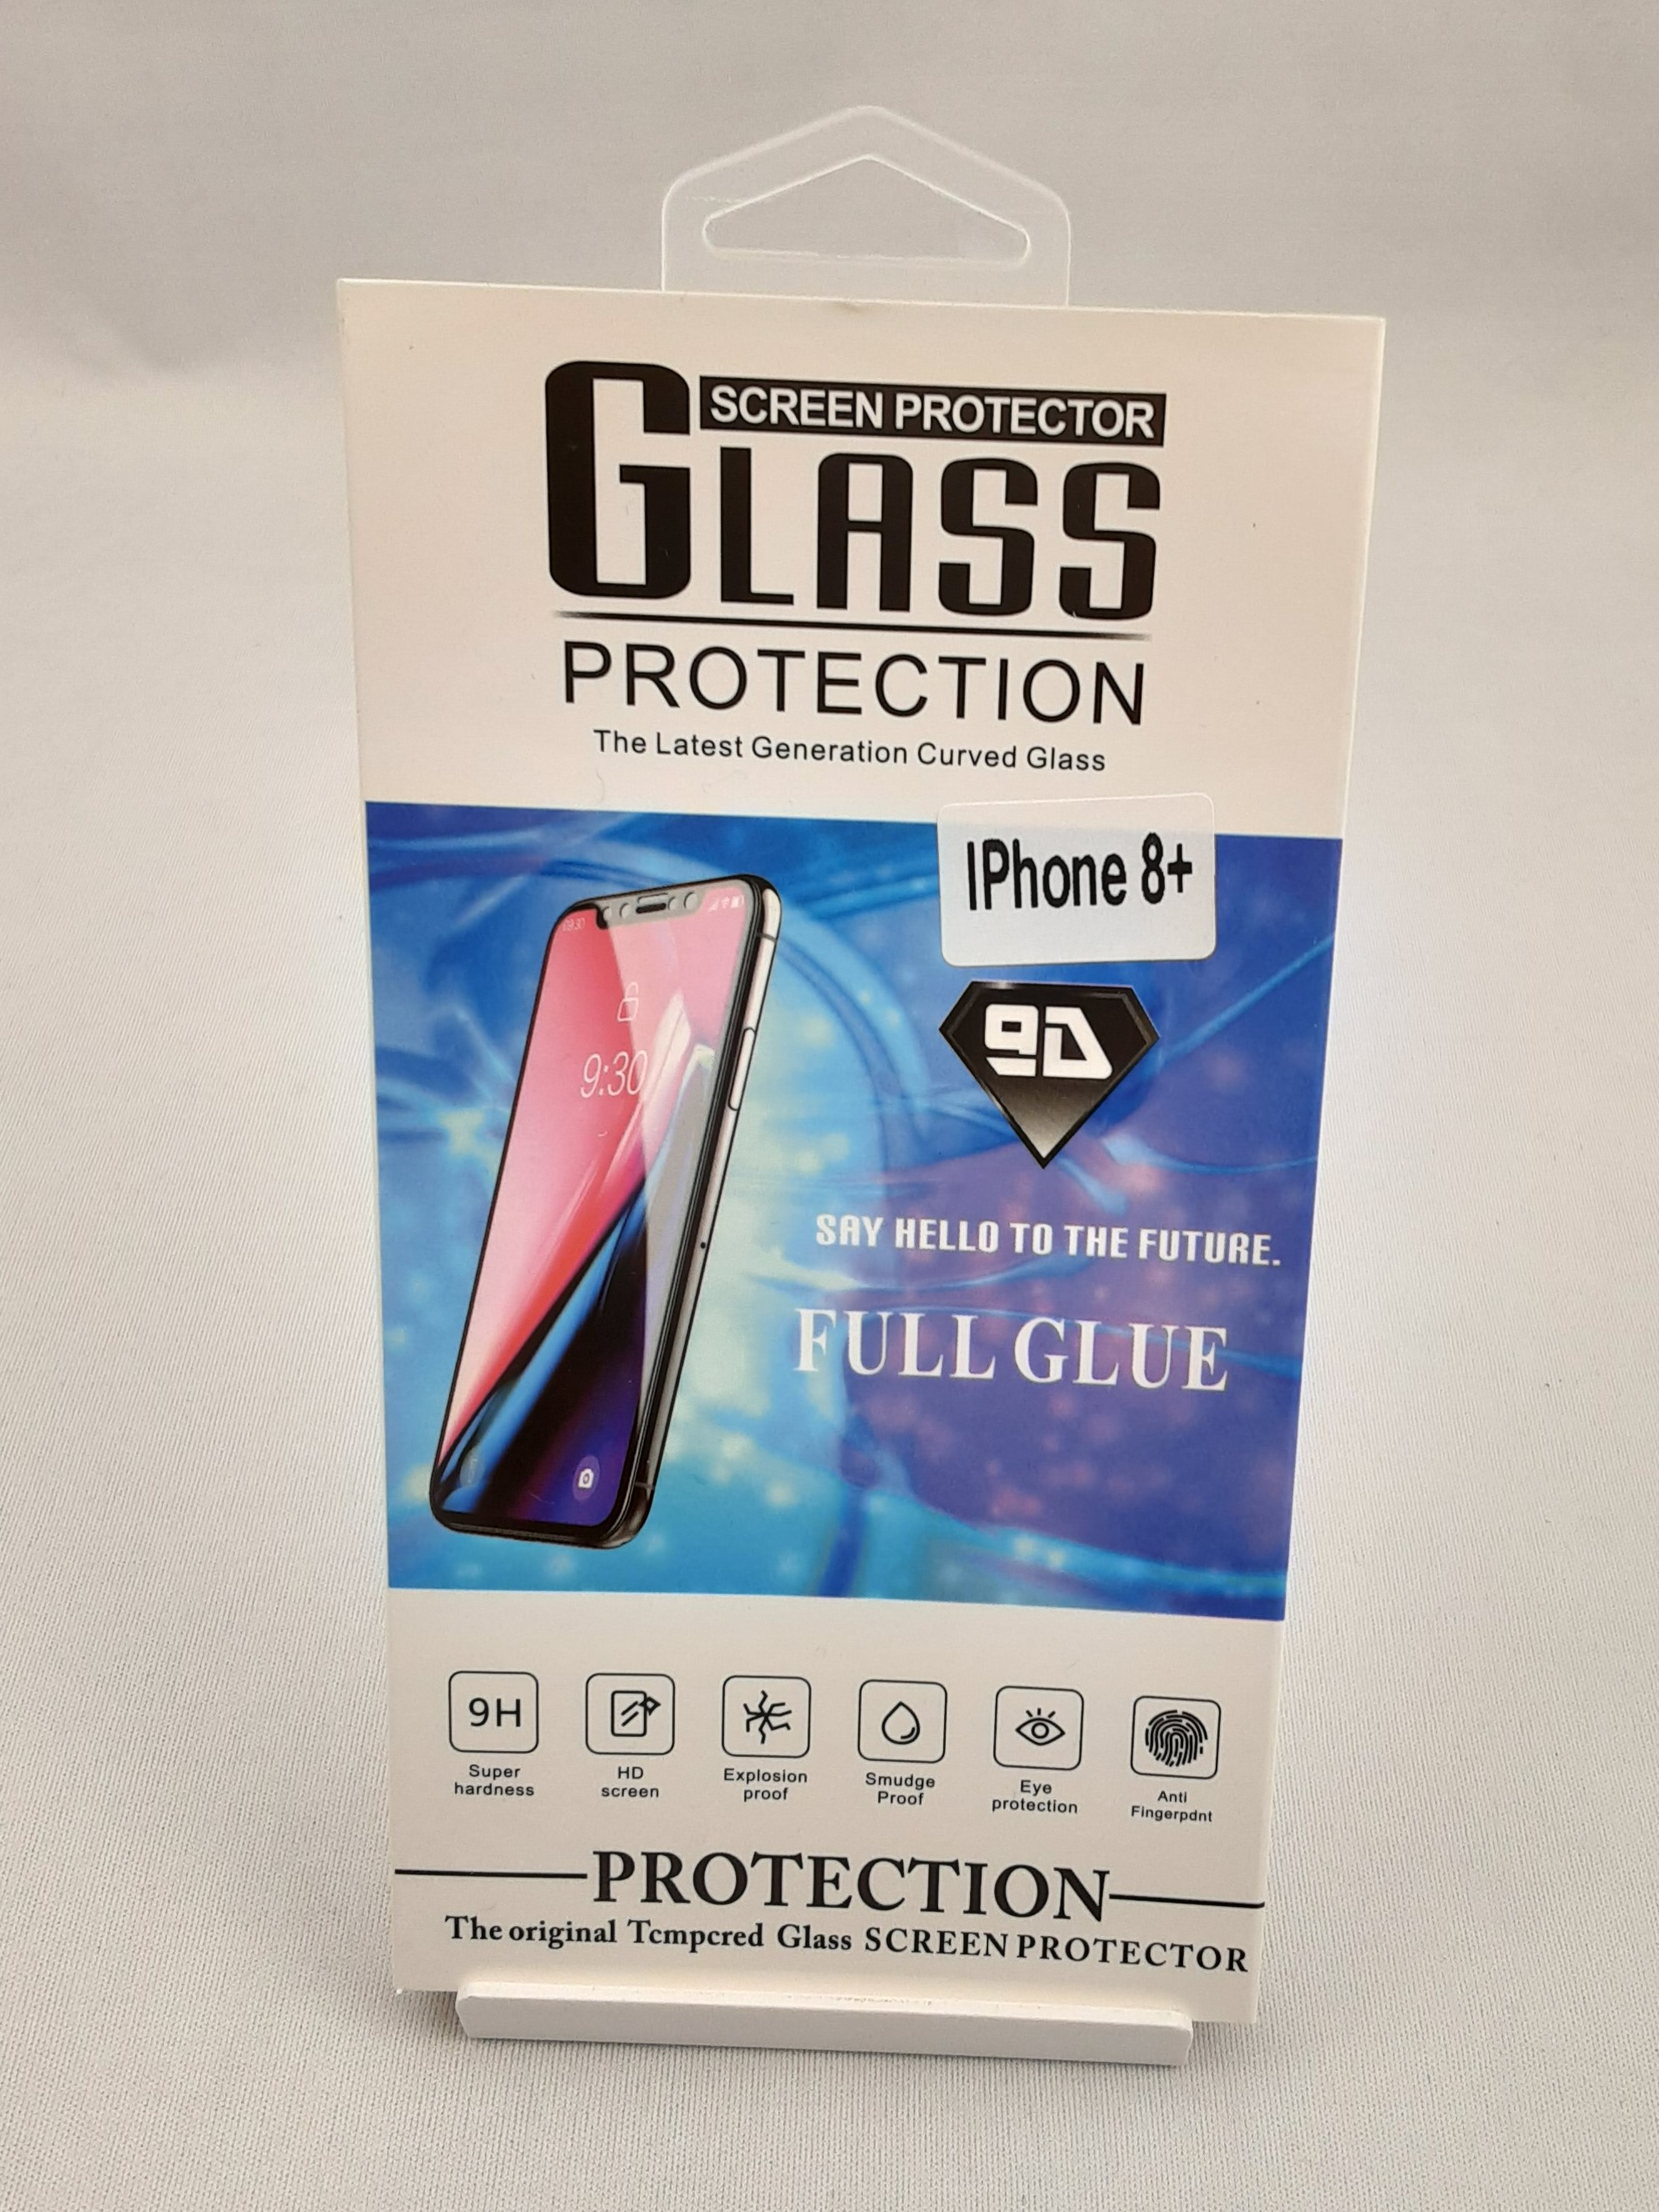 Product photo for Glass Protection IPH 8+ TEMP GLASS